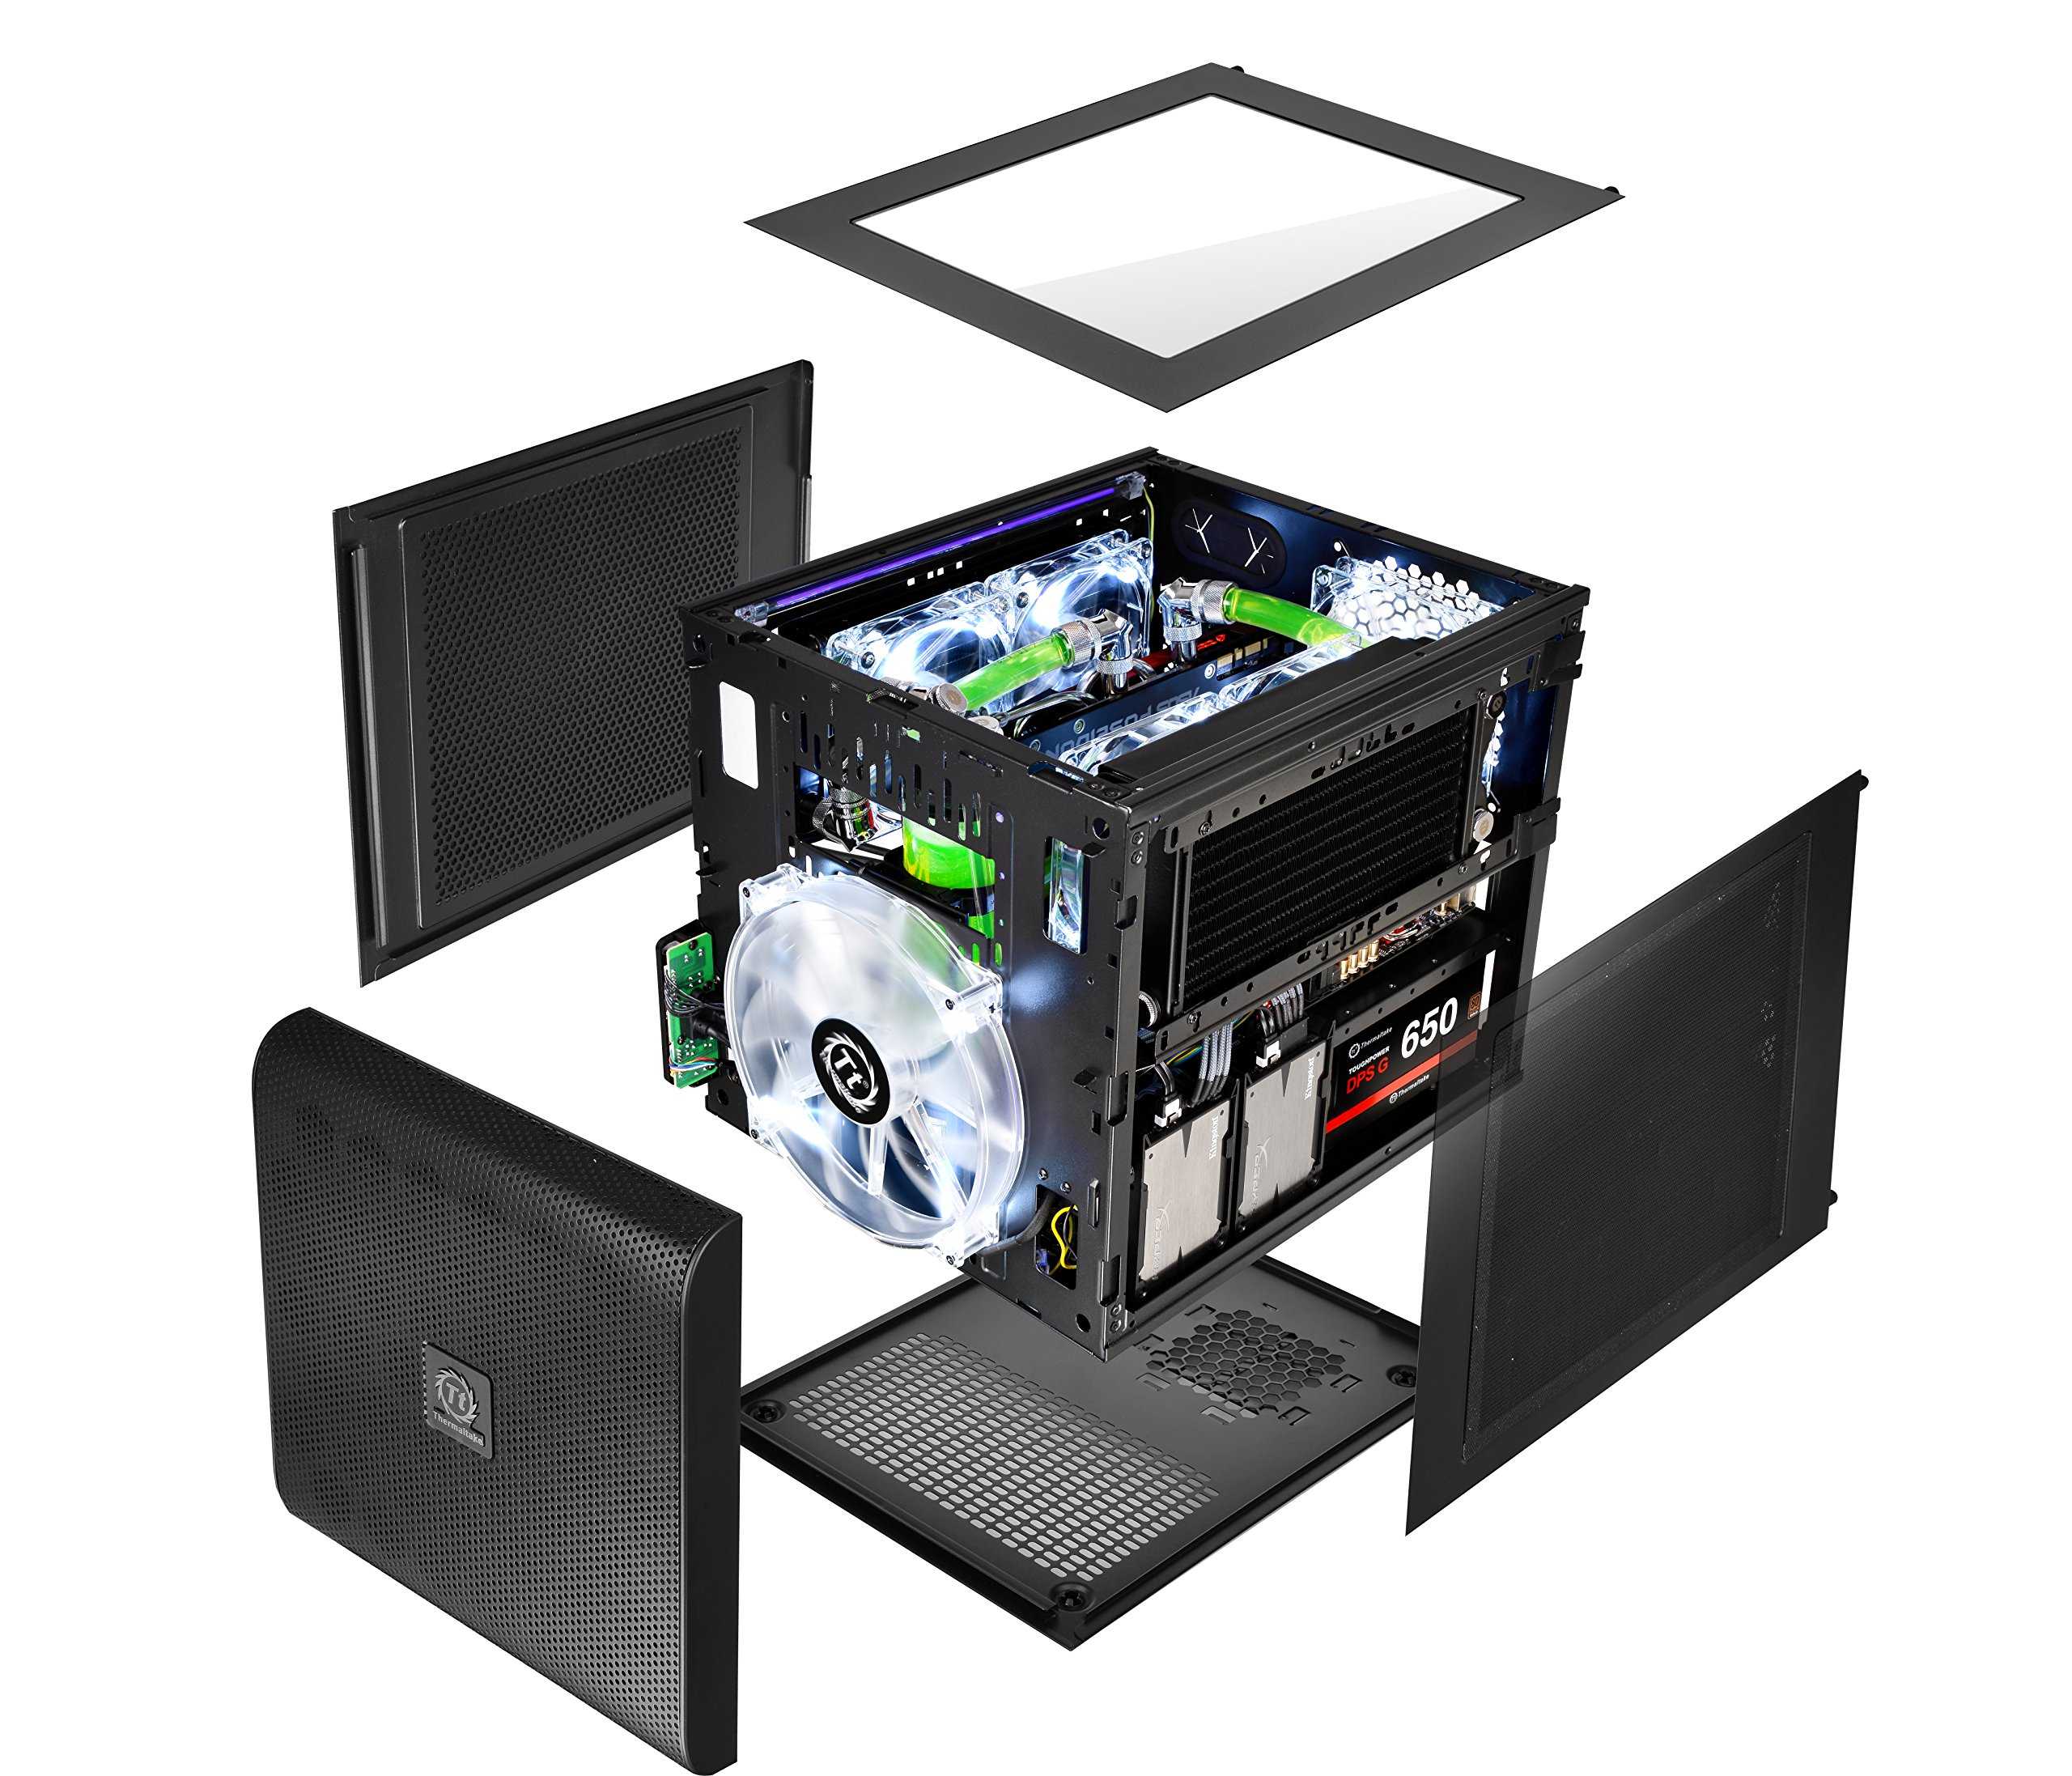 Thermaltake Core V21 SPCC Micro ATX, Mini ITX Cube Gaming Computer Case Chassis, Small Form Factor Builds, 200mm Front Fan Pre-installed, CA-1D5-00S1WN-00 by Thermaltake (Image #13)